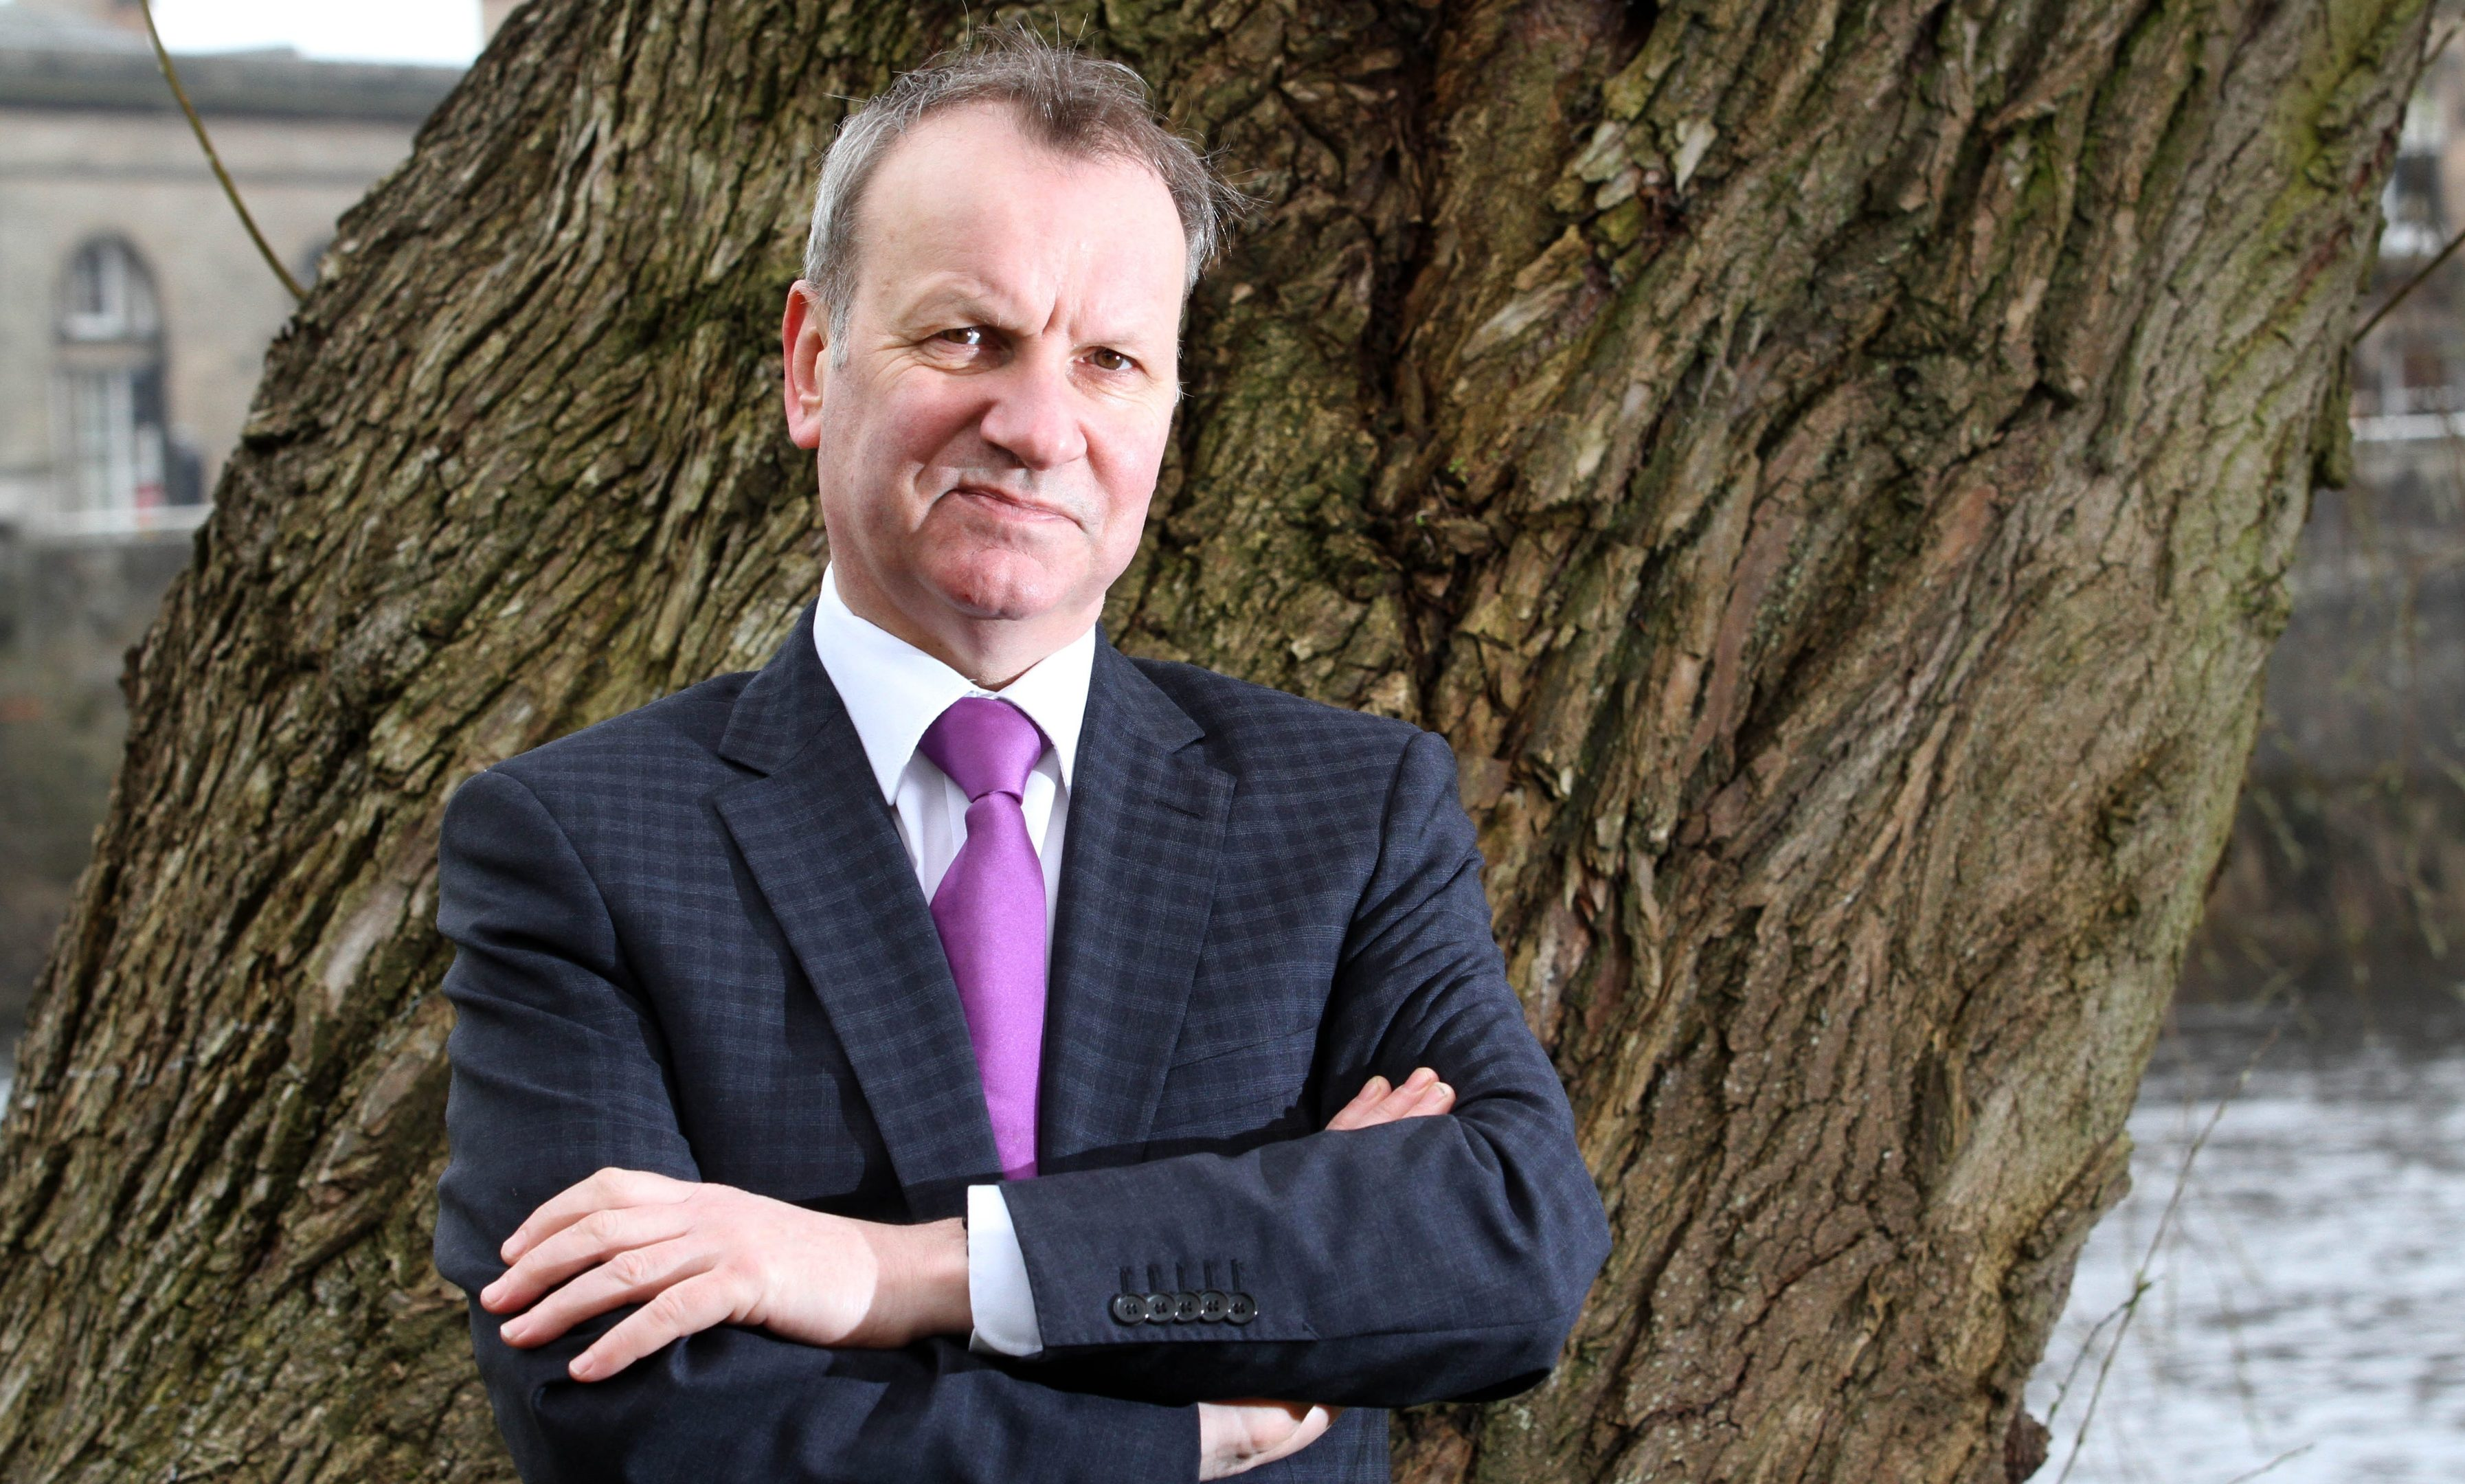 Pete Wishart MP wants the Conservative party chairman to step aside.